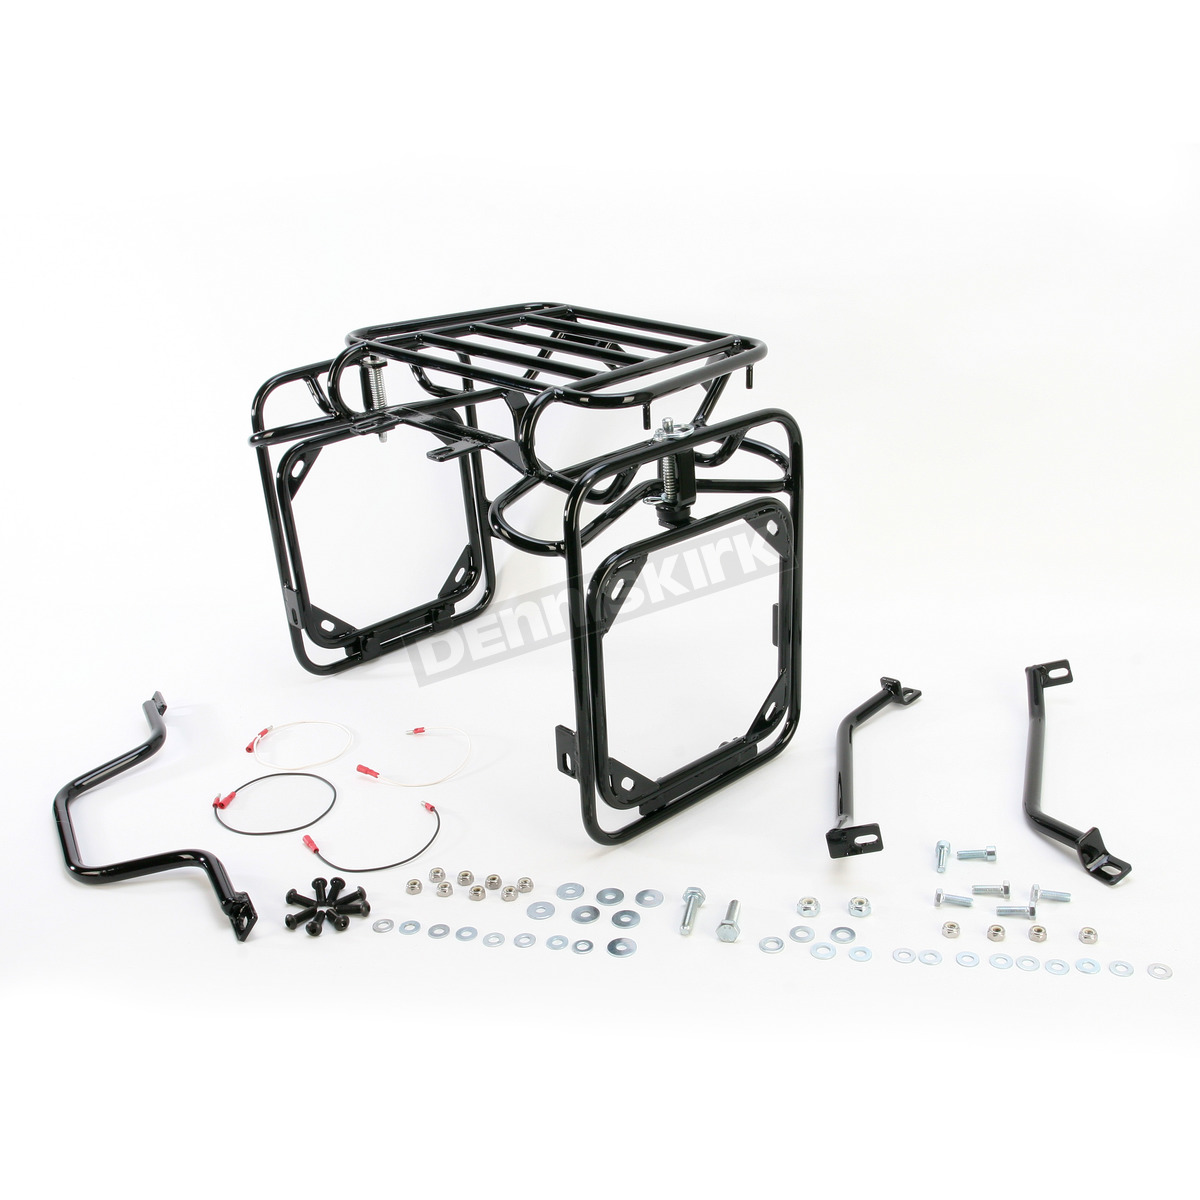 Moose Expedition Luggage Rack System 1510 0175 Dirt Bike